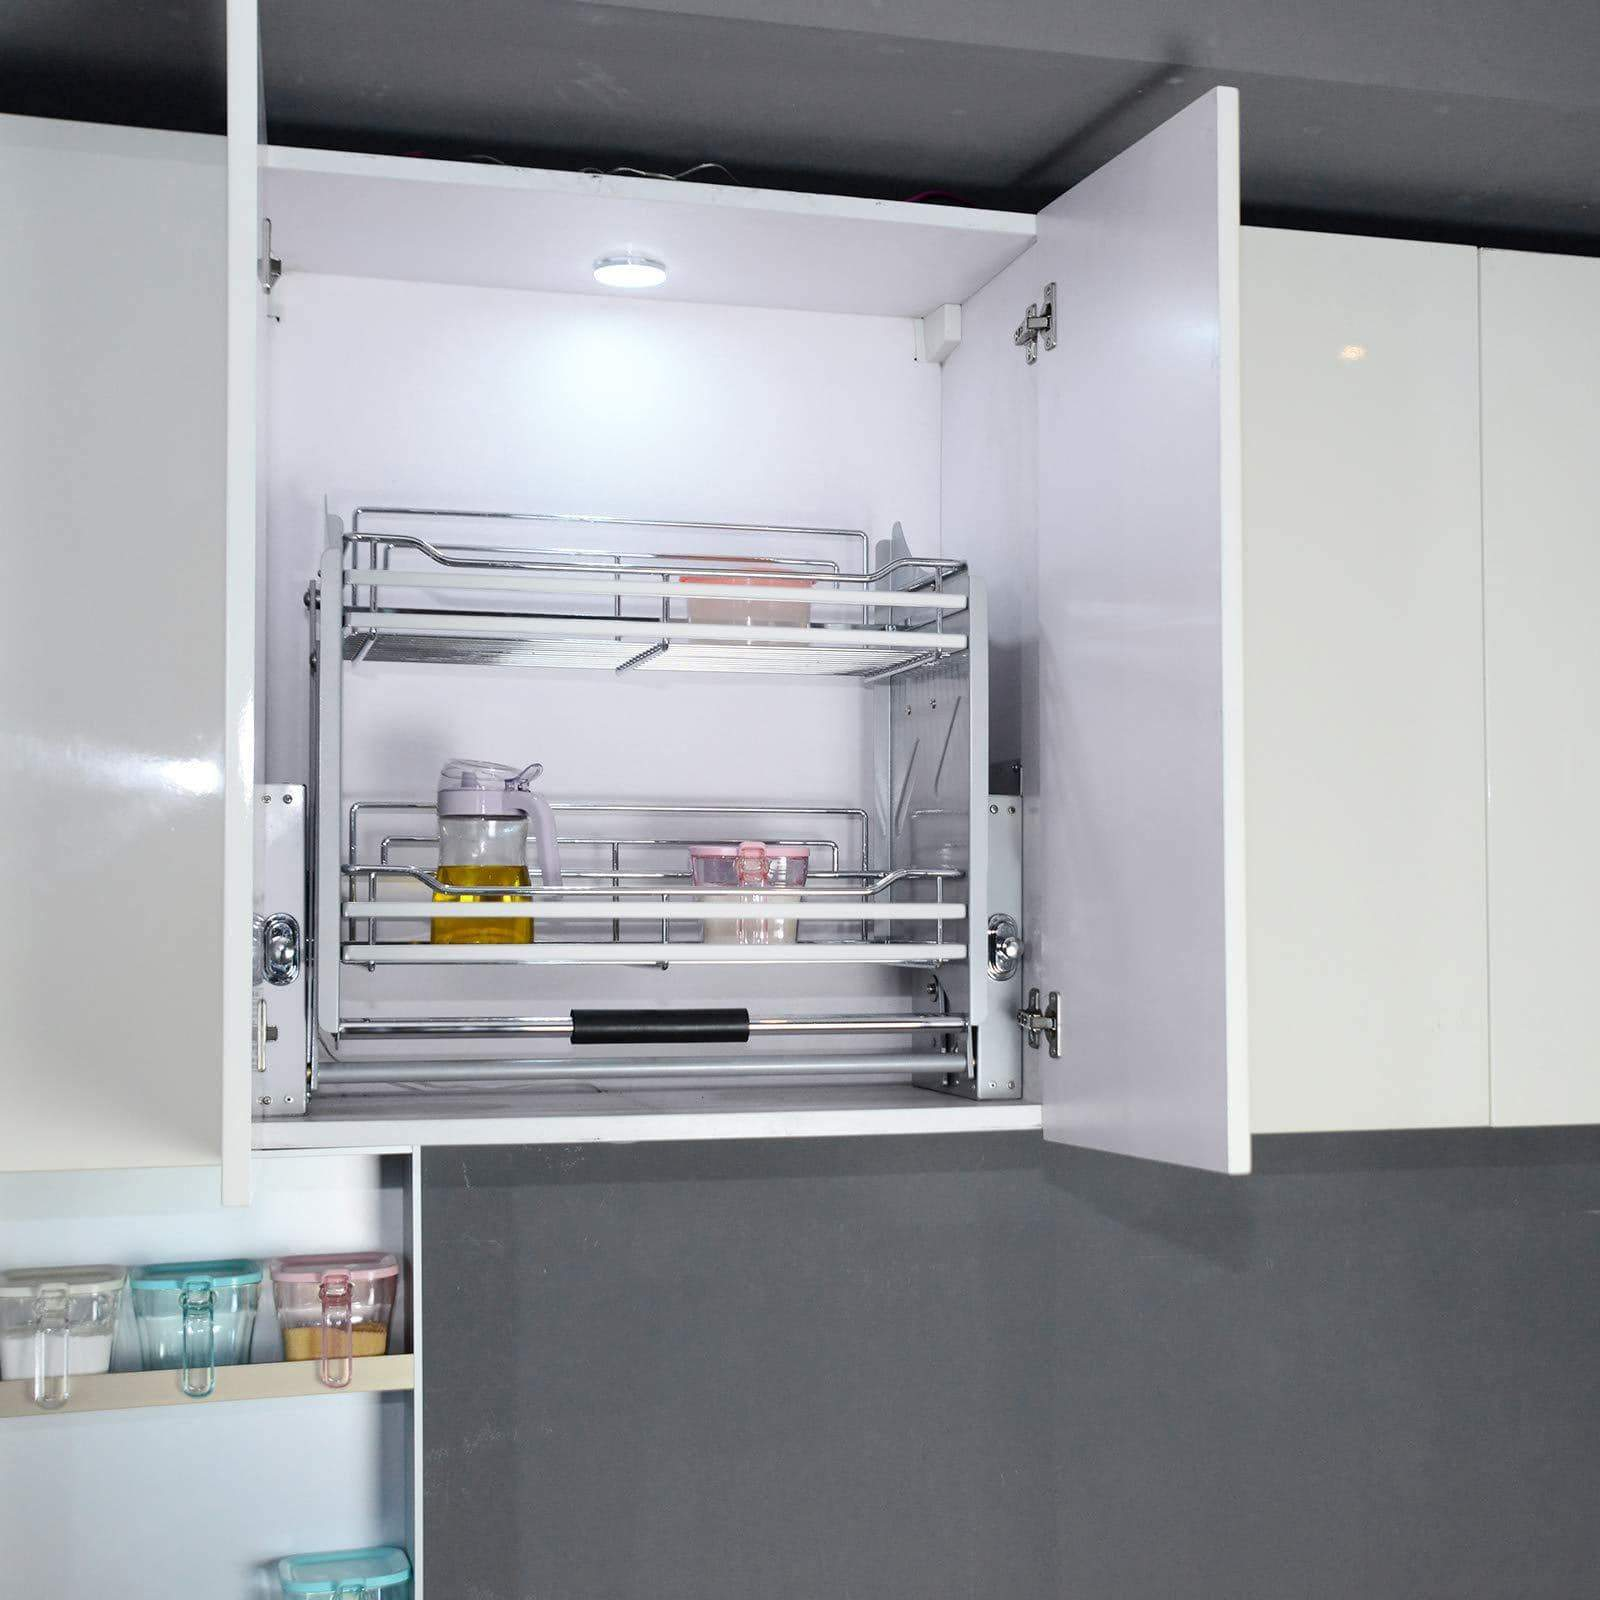 Top rated kitchen pull down 2 tier wire shelf shelves steel wall unit storage organizer system cabinet for 800mm width cupboards